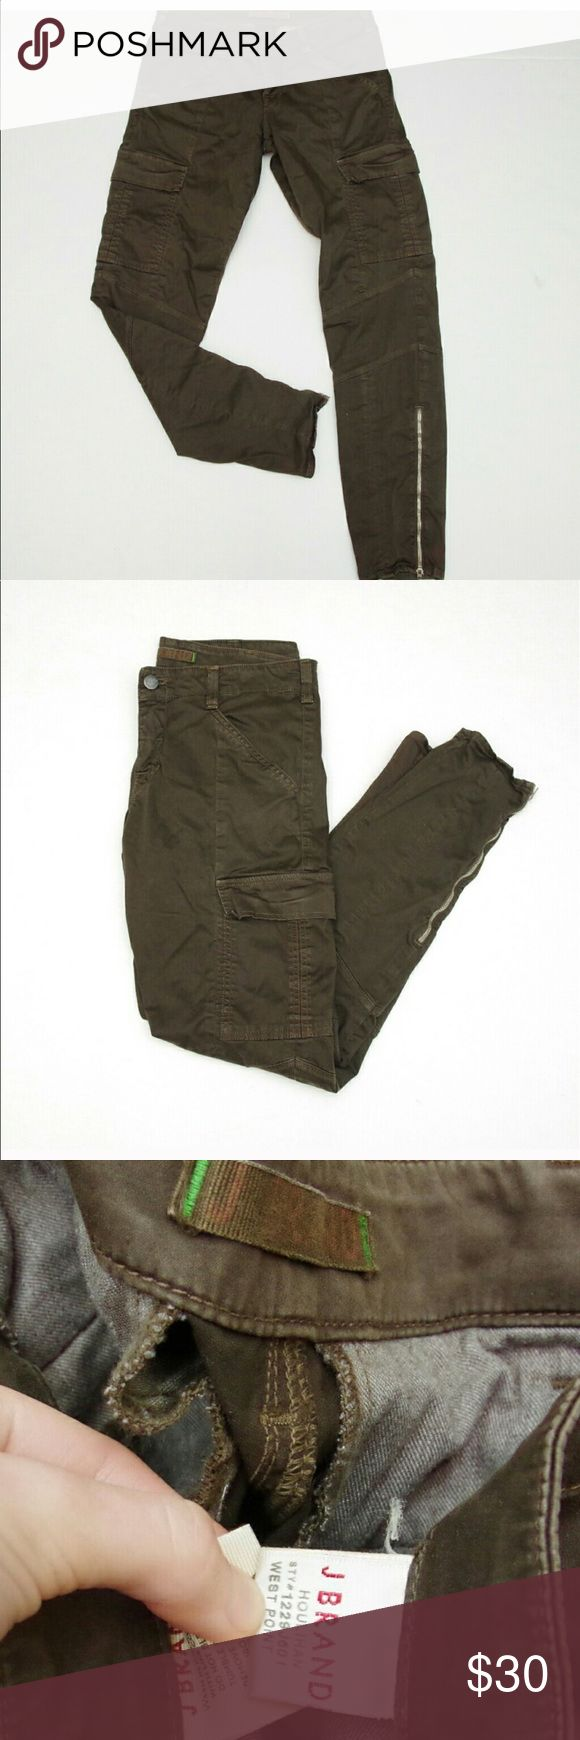 Jbrand forest green cargo pants They have side zippers on leg very comfy pretty stretchable fits a size 11/12 J Brand Jeans Skinny